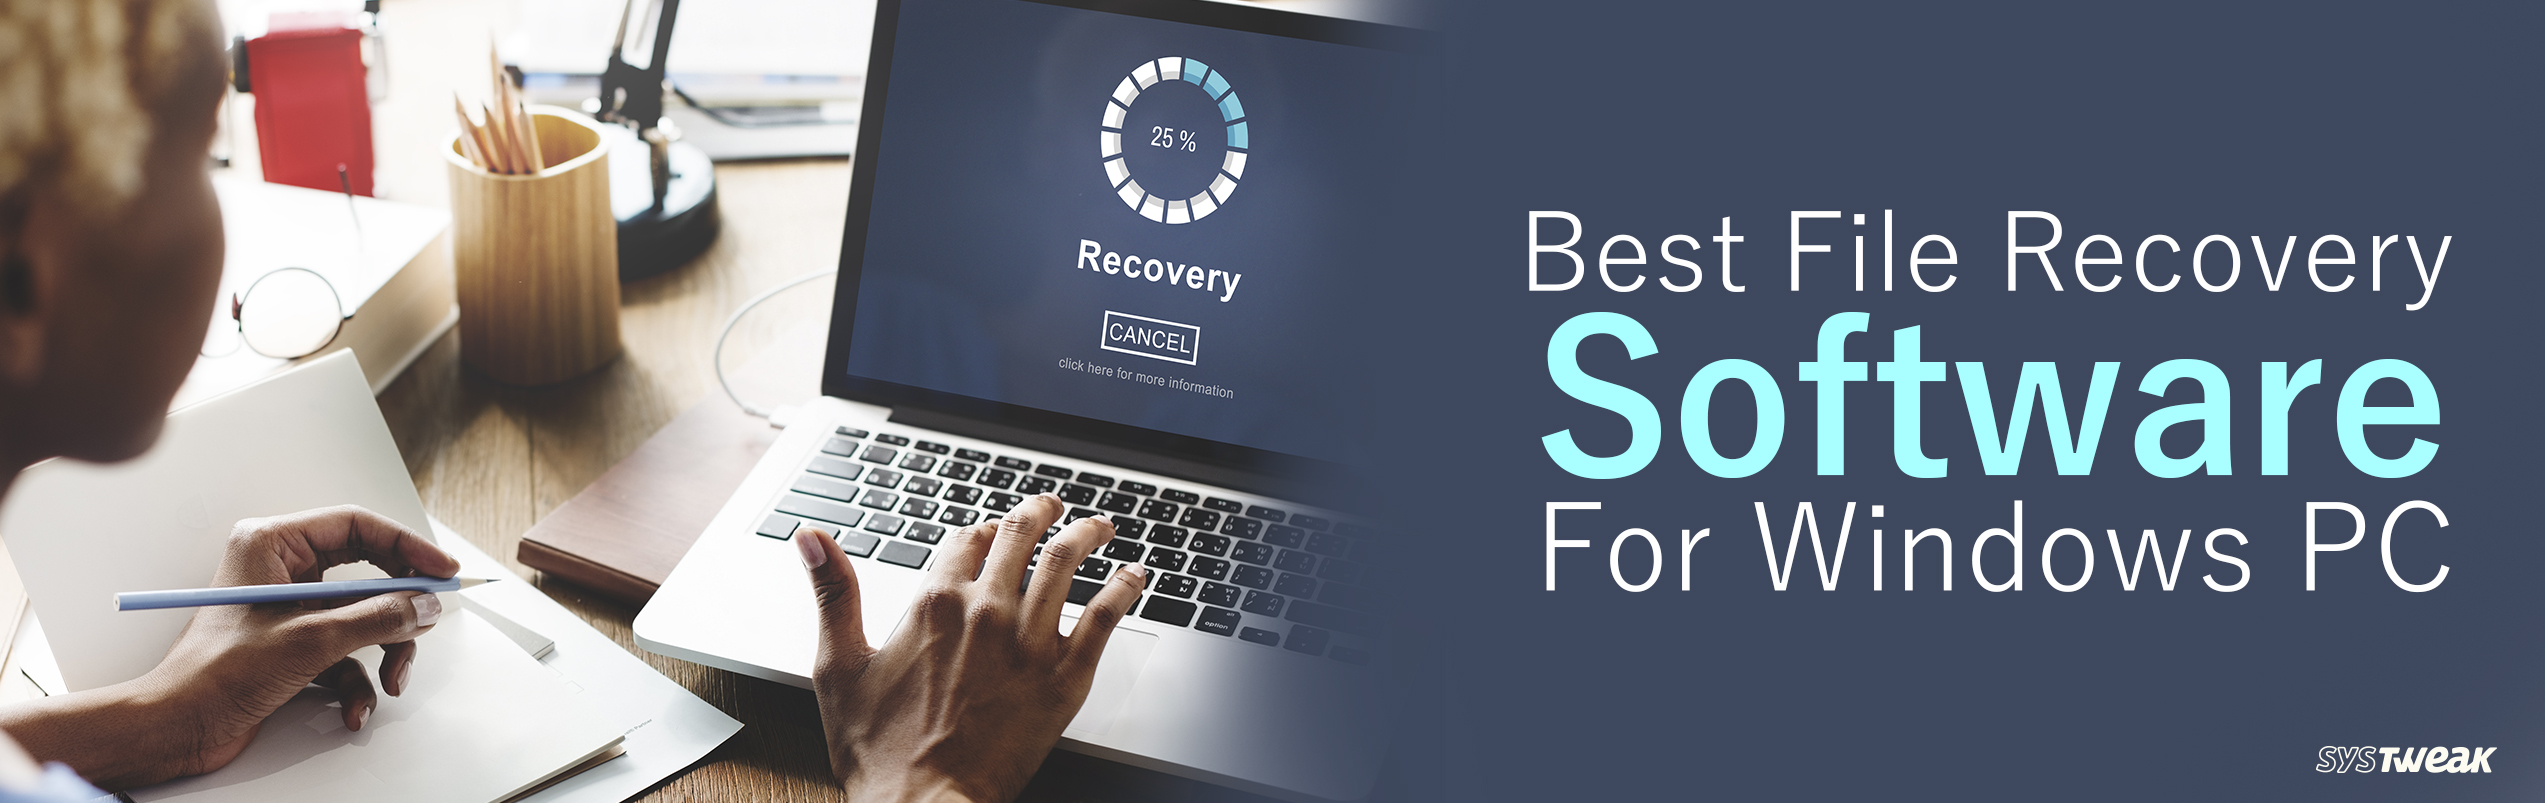 10 Best File Recovery Software For Windows PC In 2018